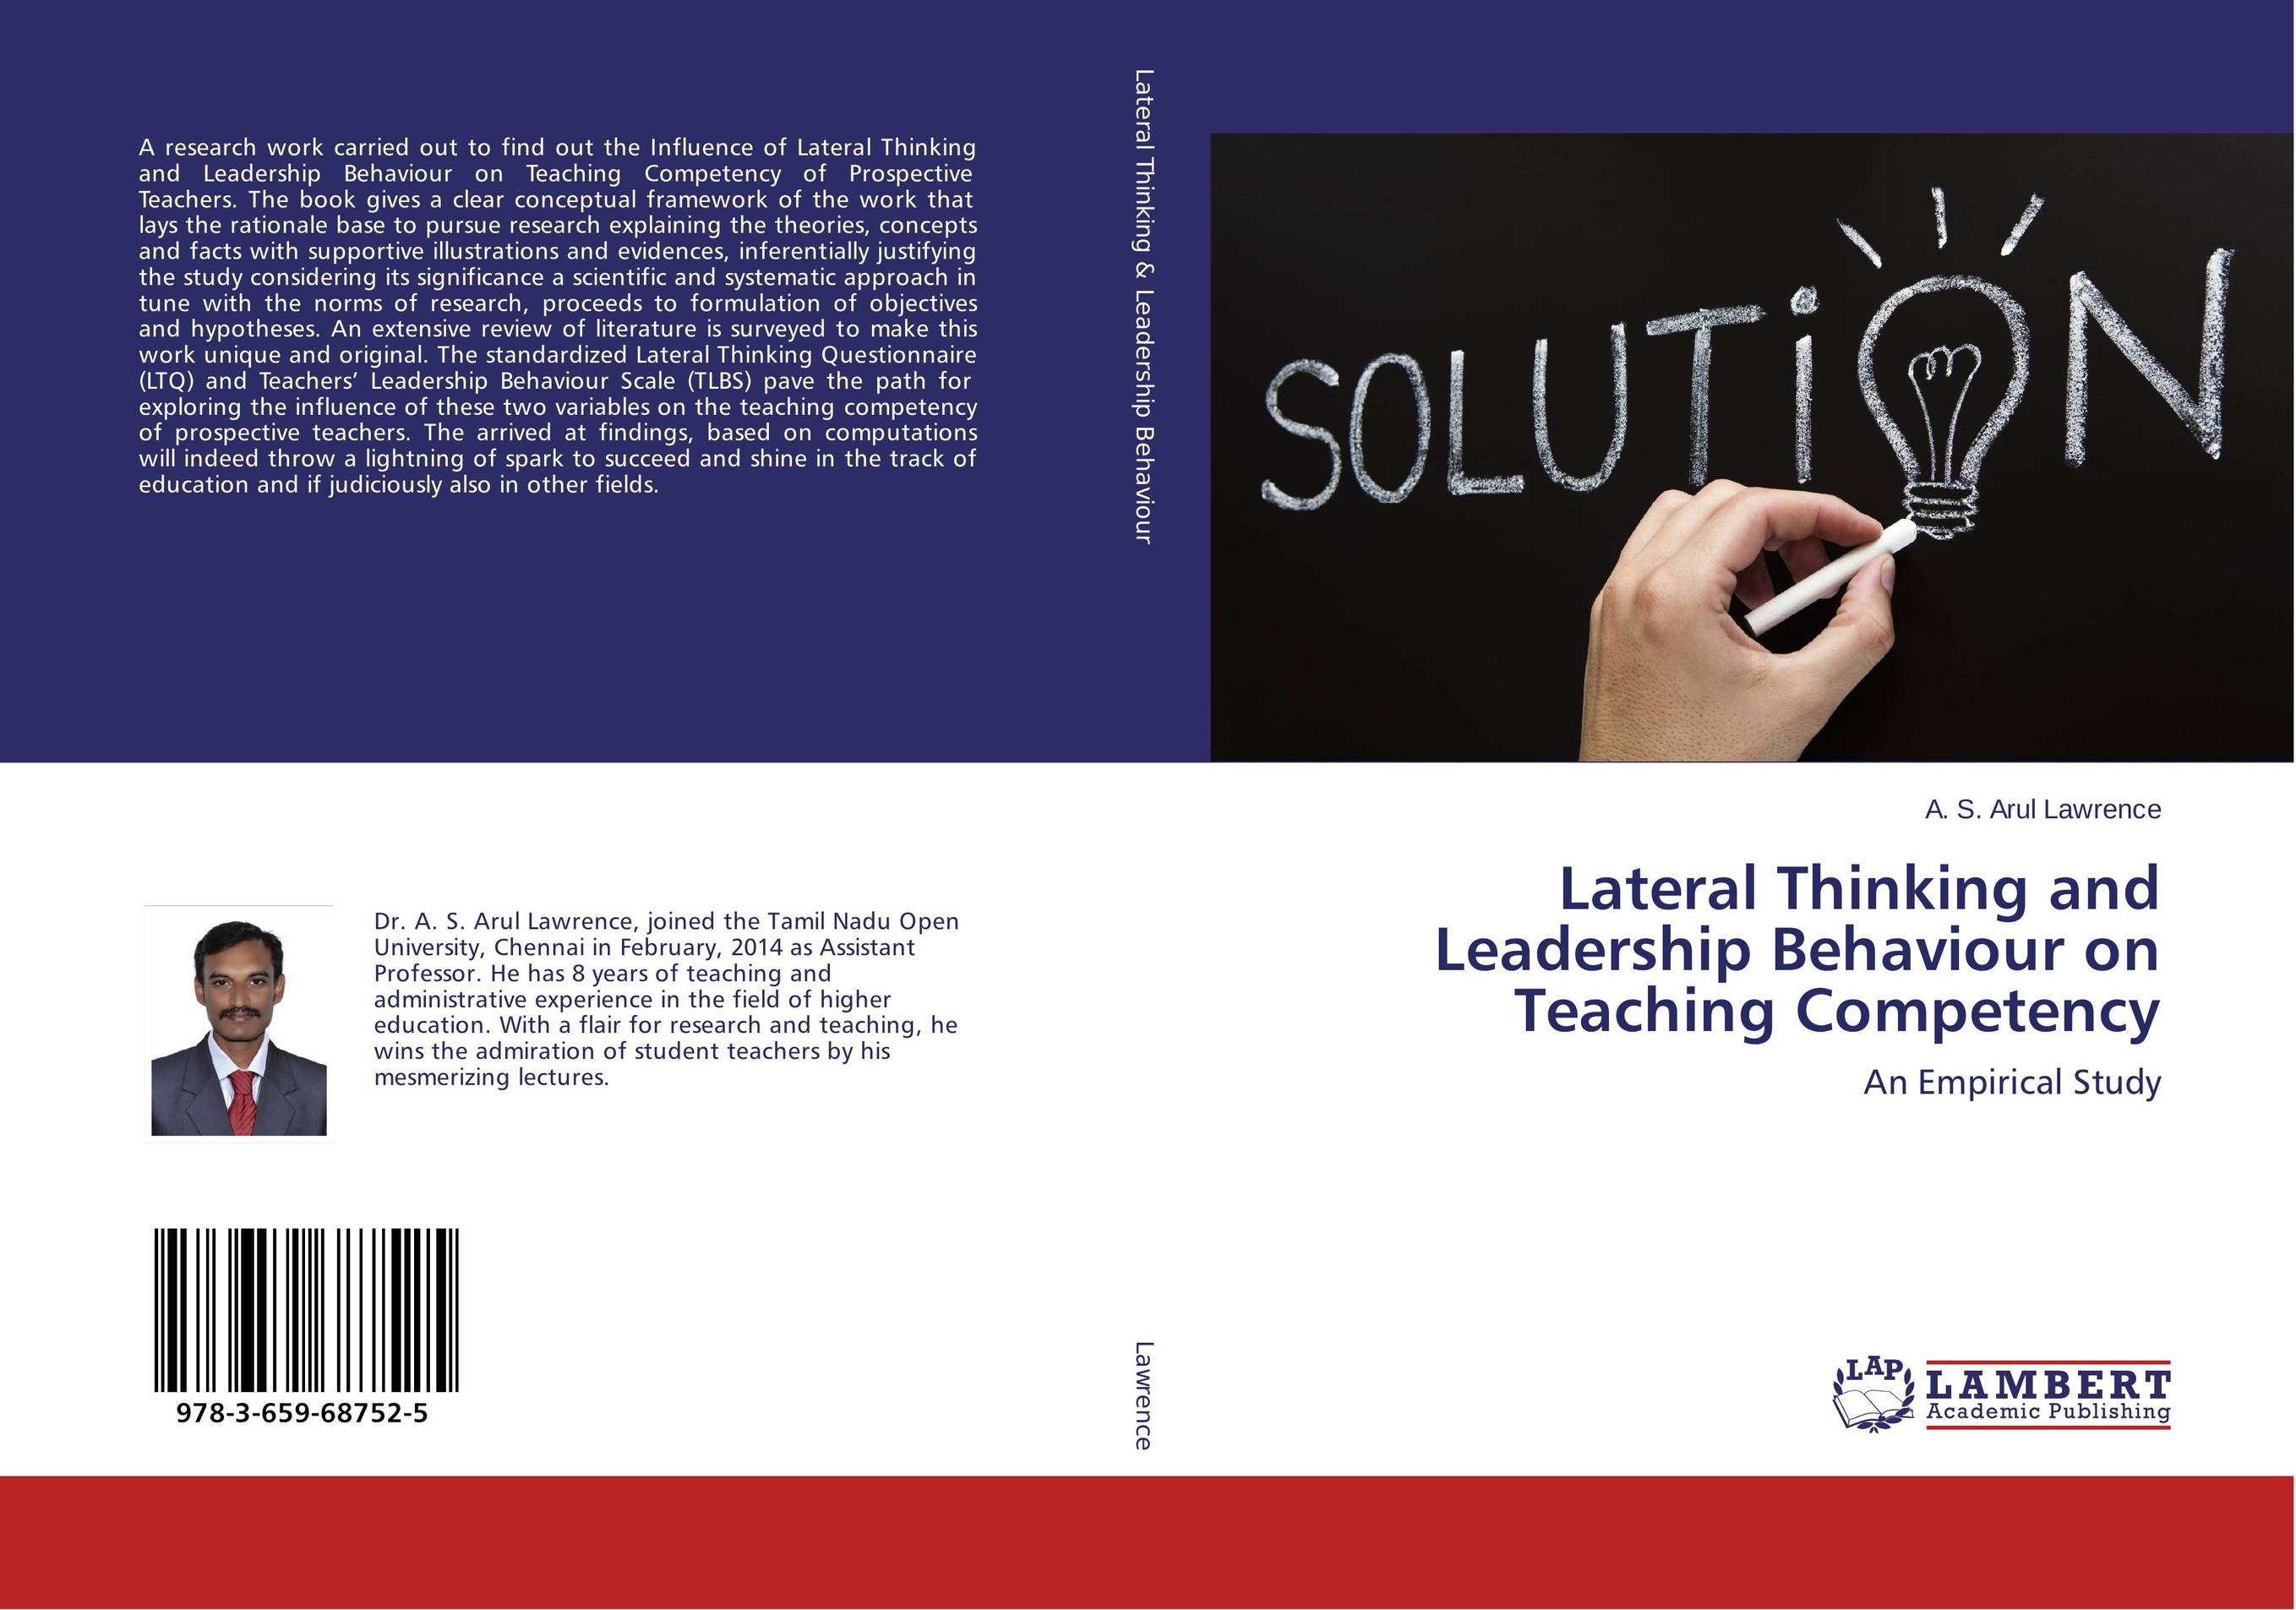 Lateral Thinking and Leadership Behaviour on Teaching Competency